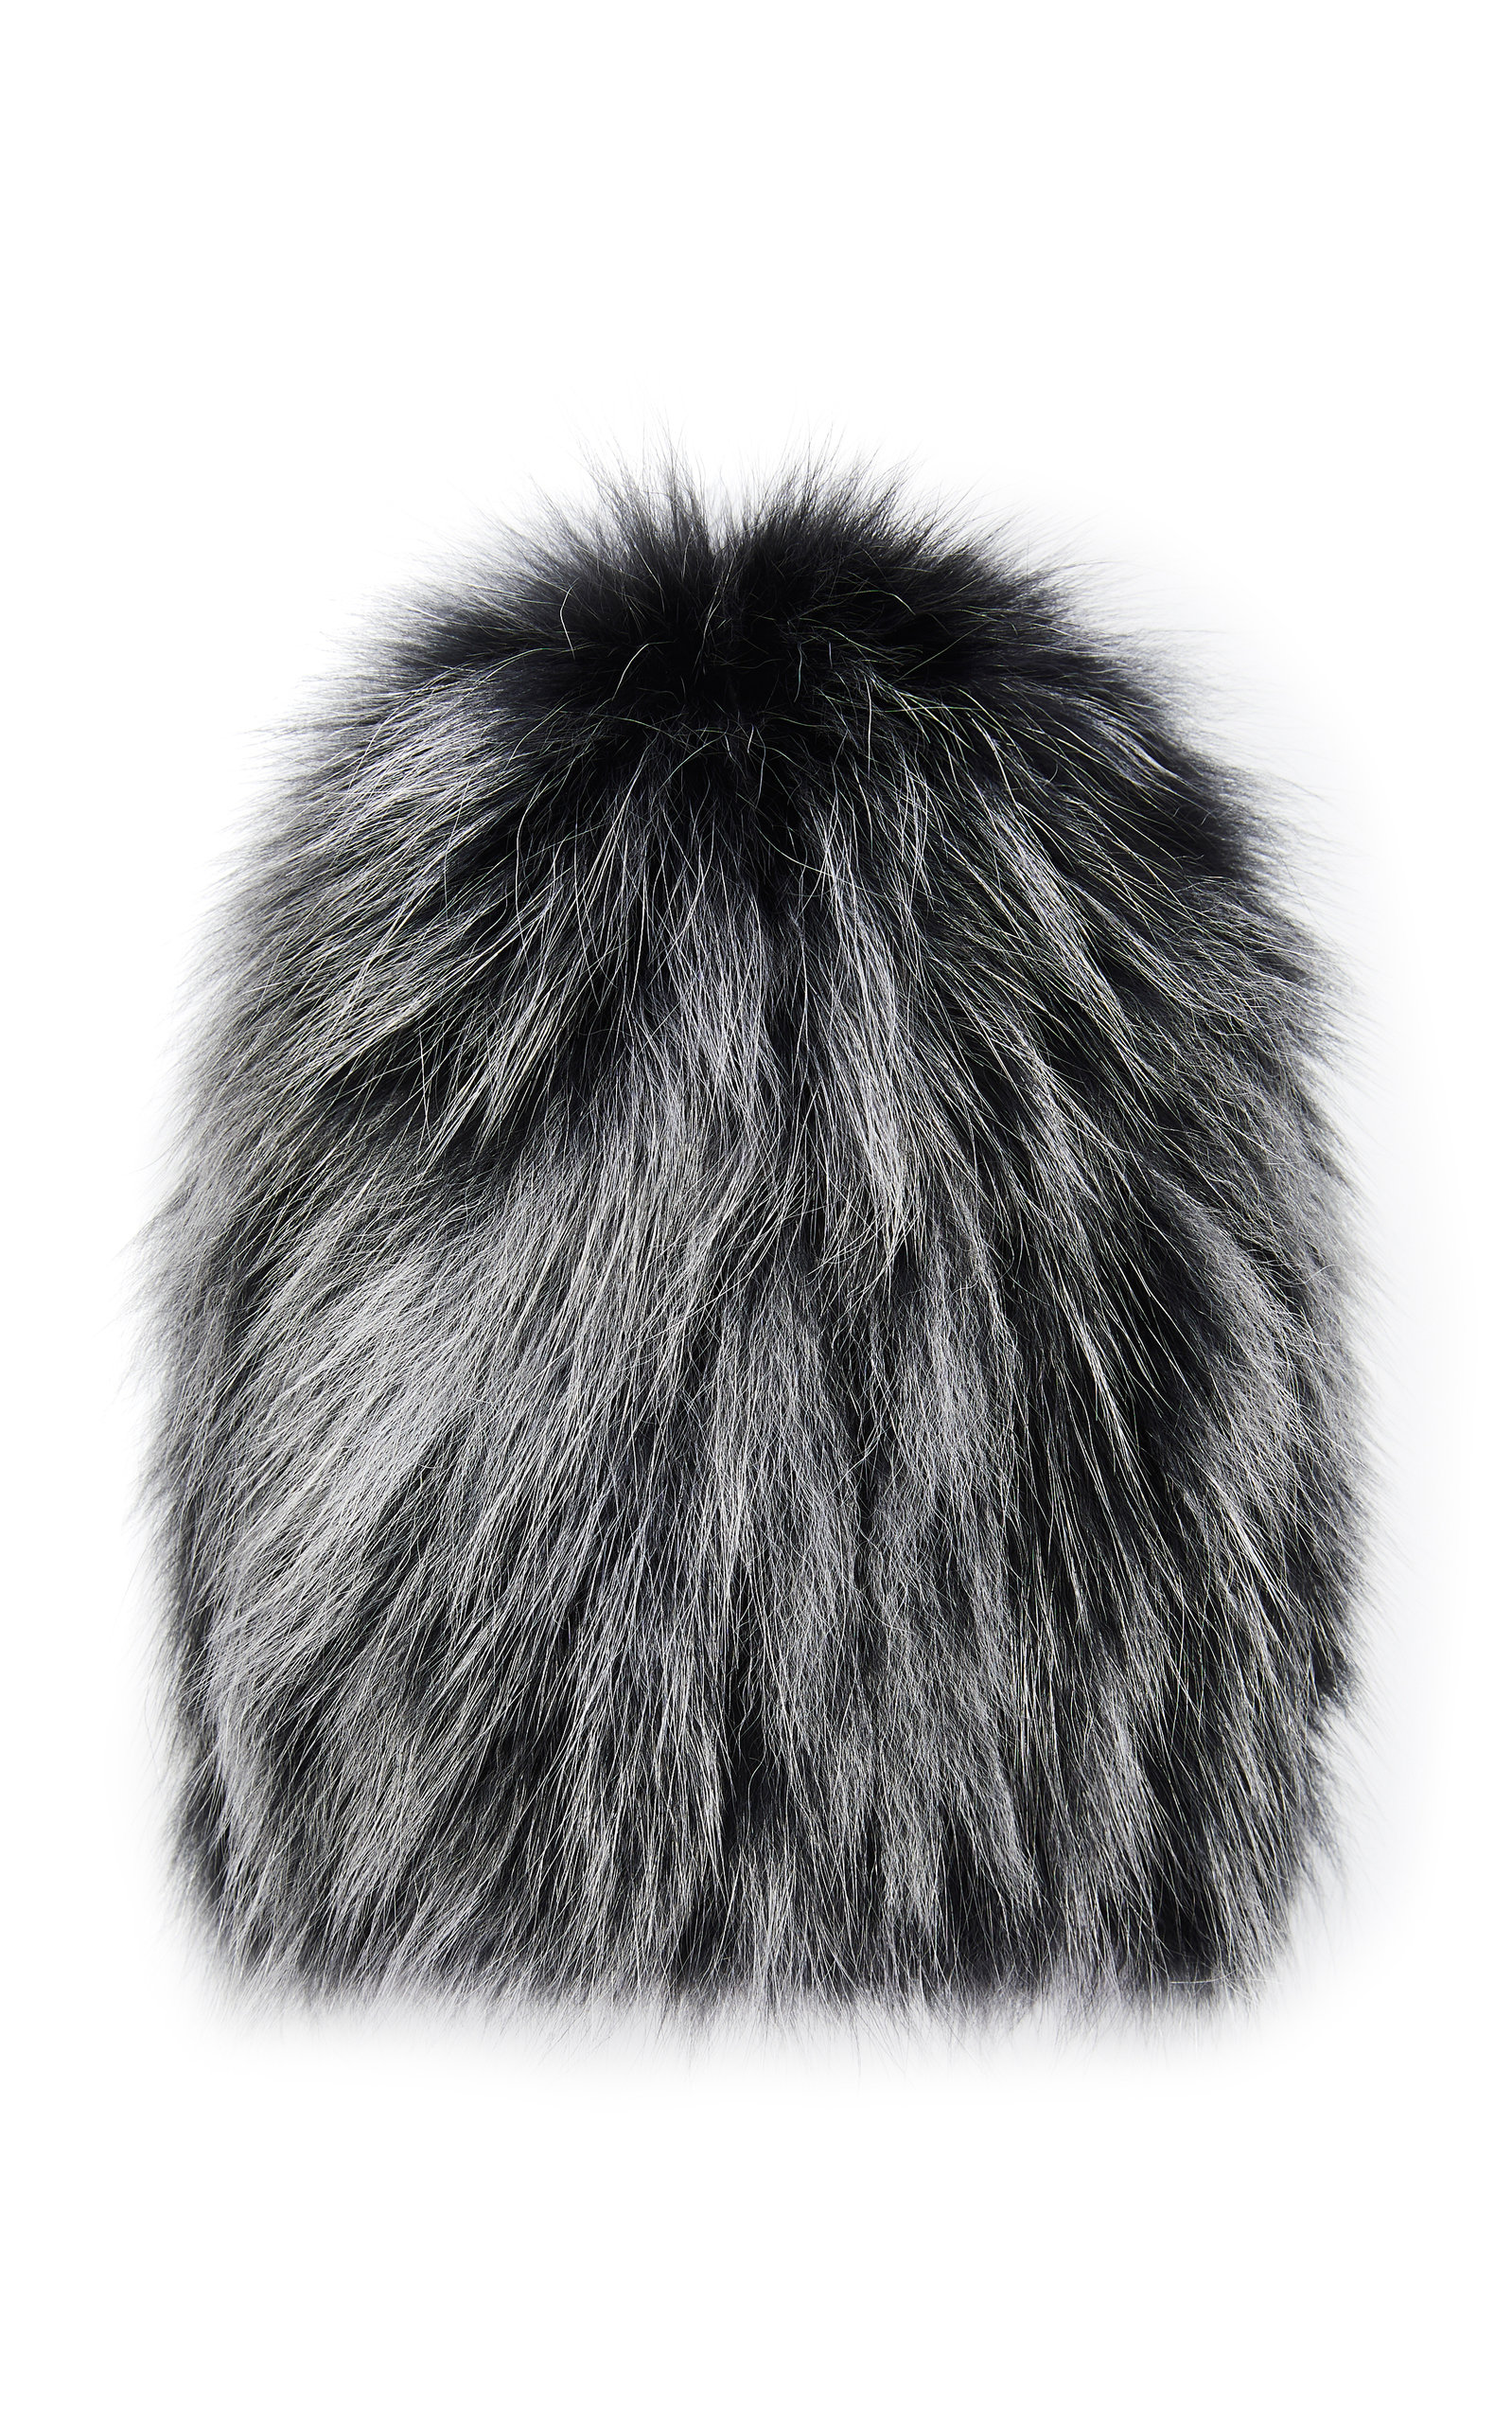 YESTADT MILLINERY M'O Exclusive Le Fluff Fur Hat in Black